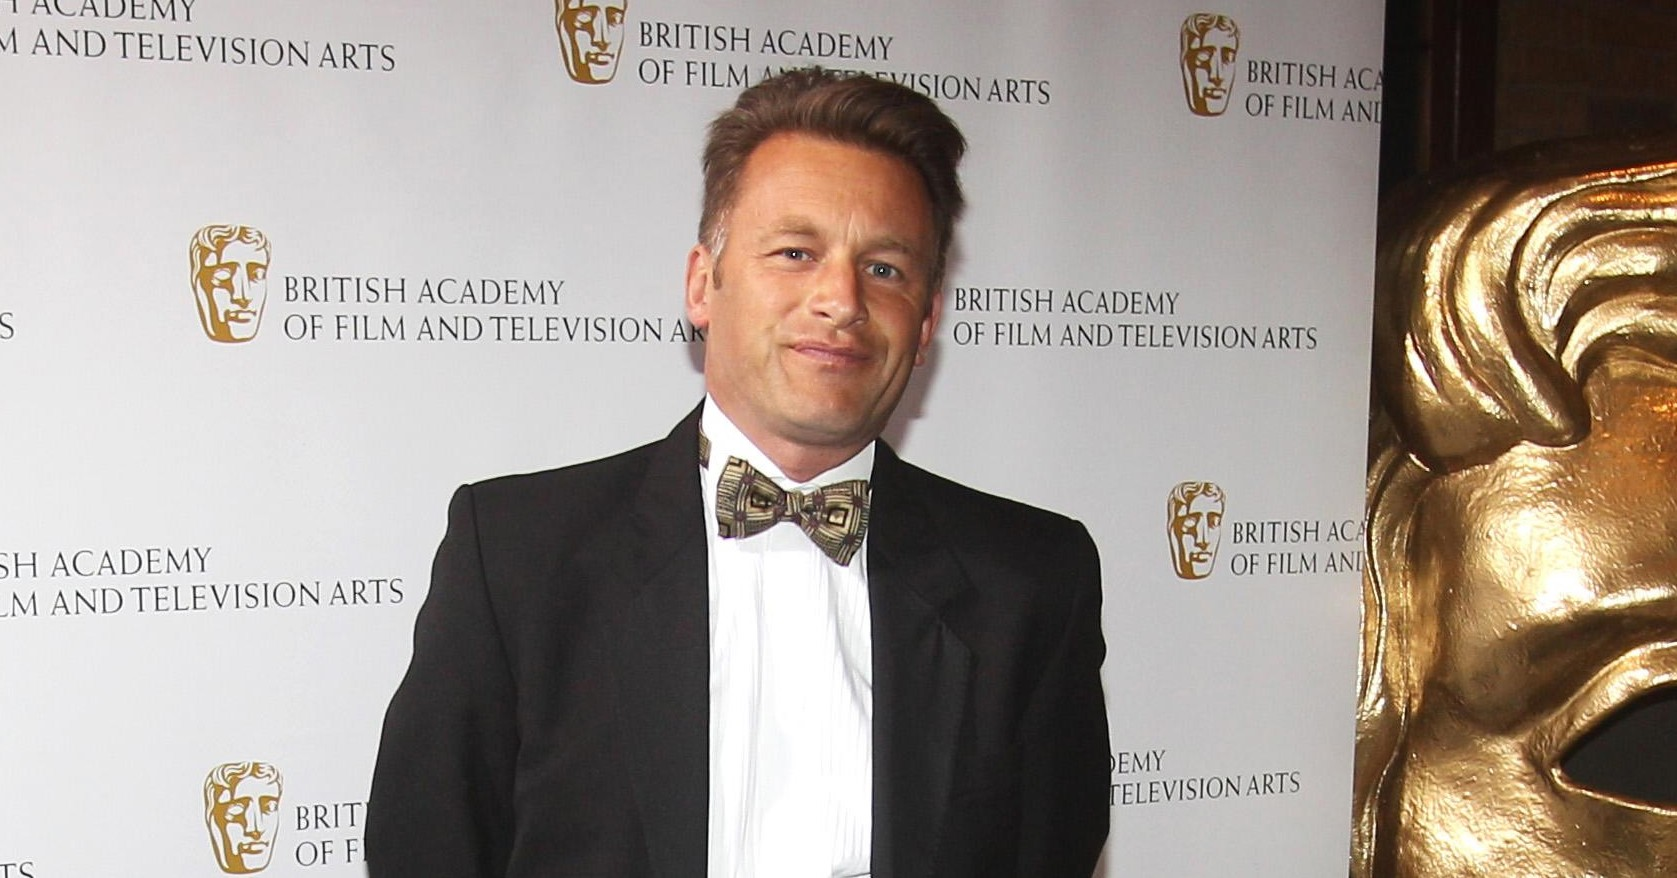 Chris Packham has been attacked by animals many times (Picture: PA)